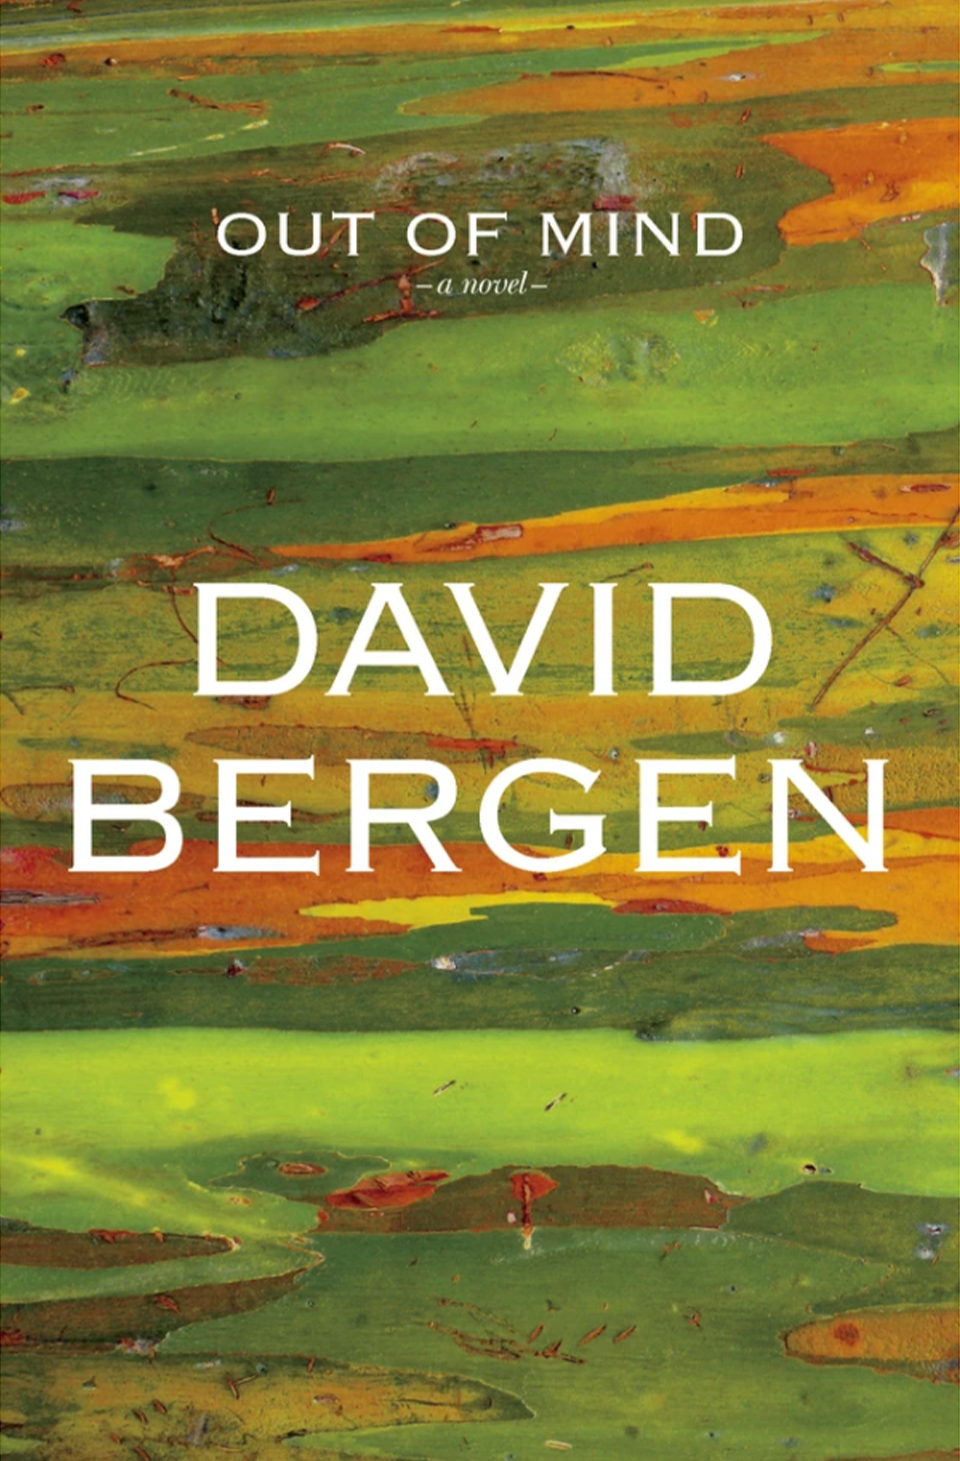 Out of Mind by David Bergen